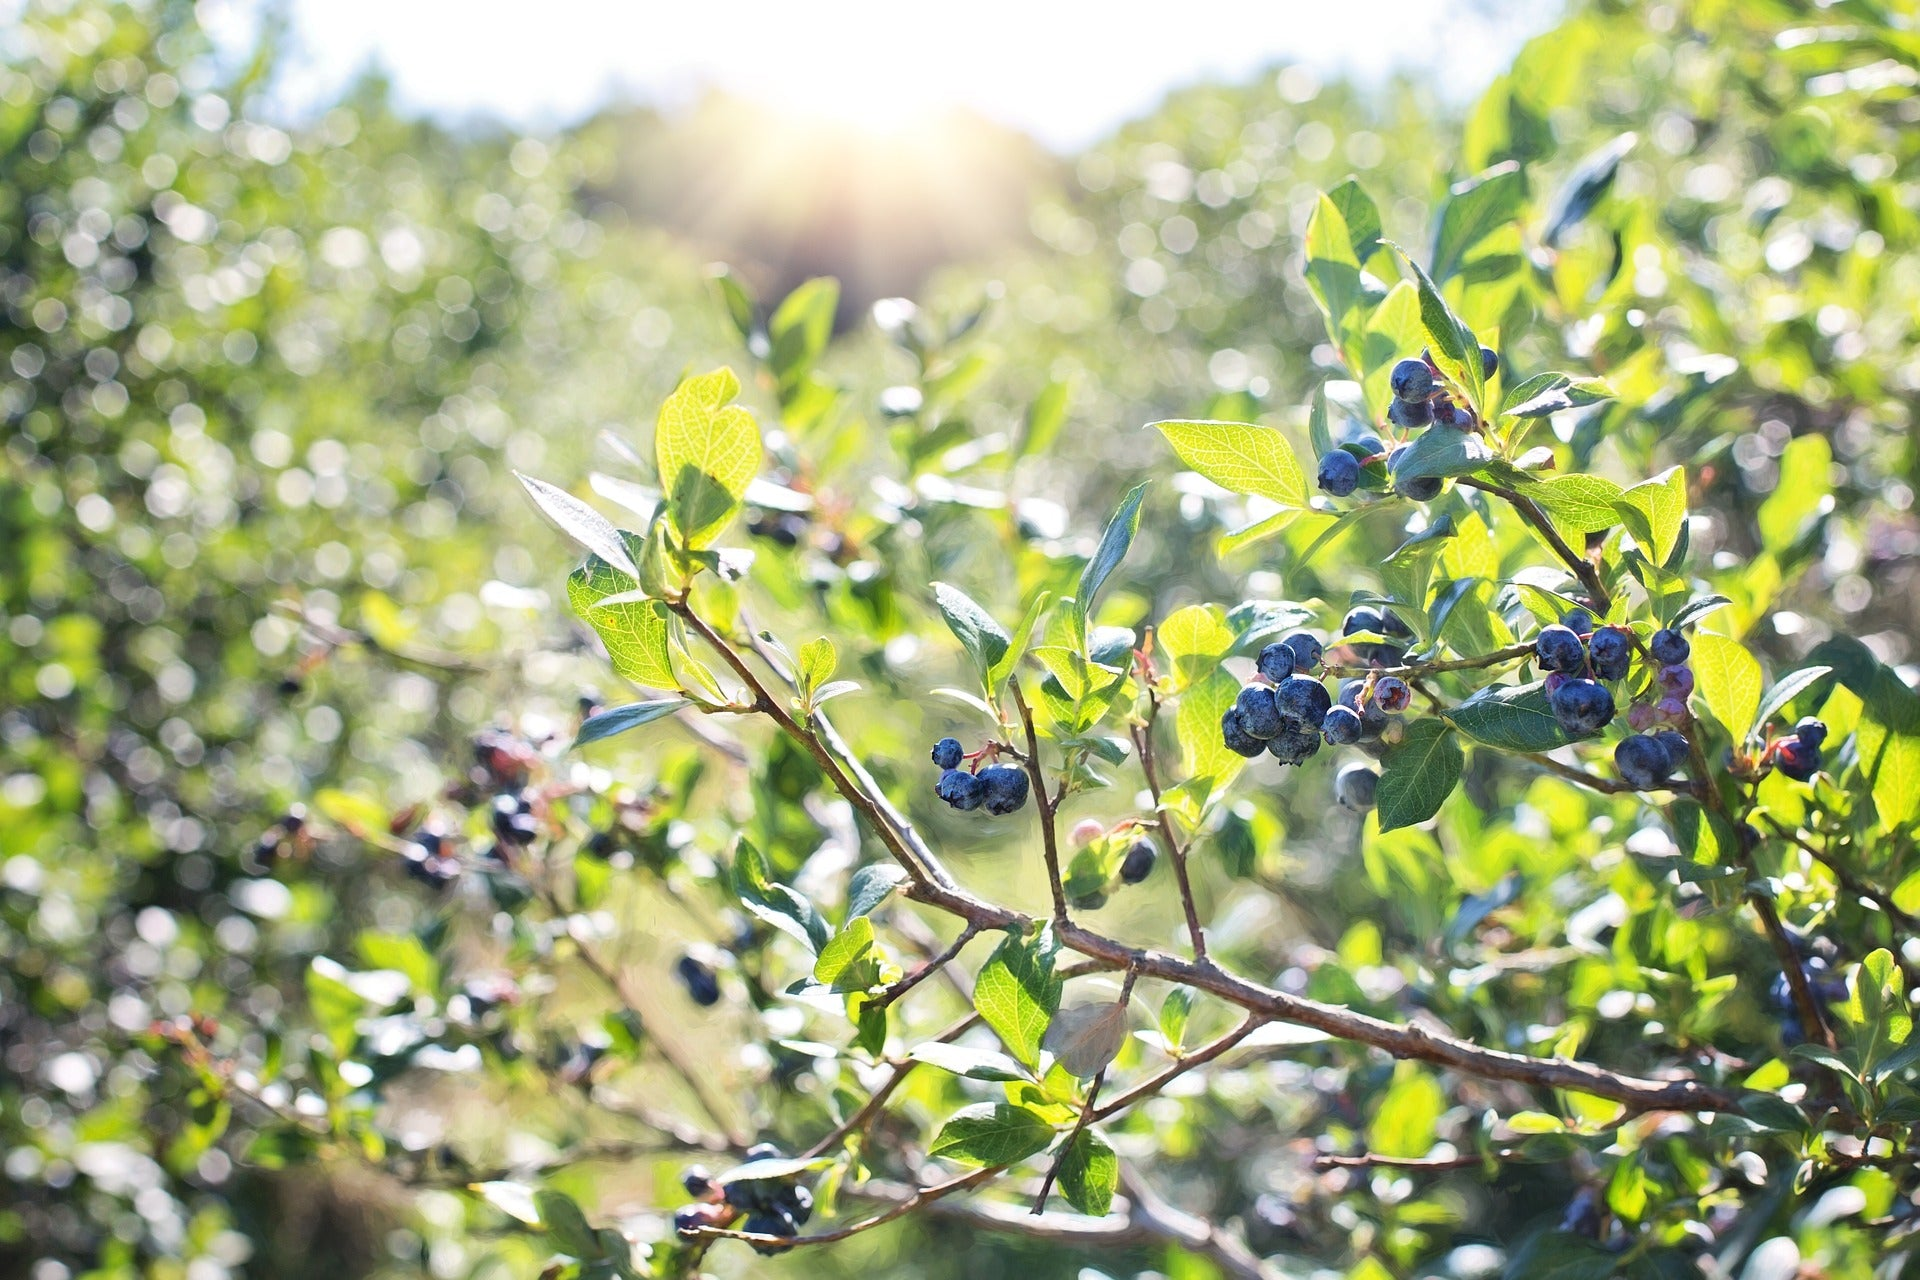 Blueberries ripe in the field at The Blueberry Barn